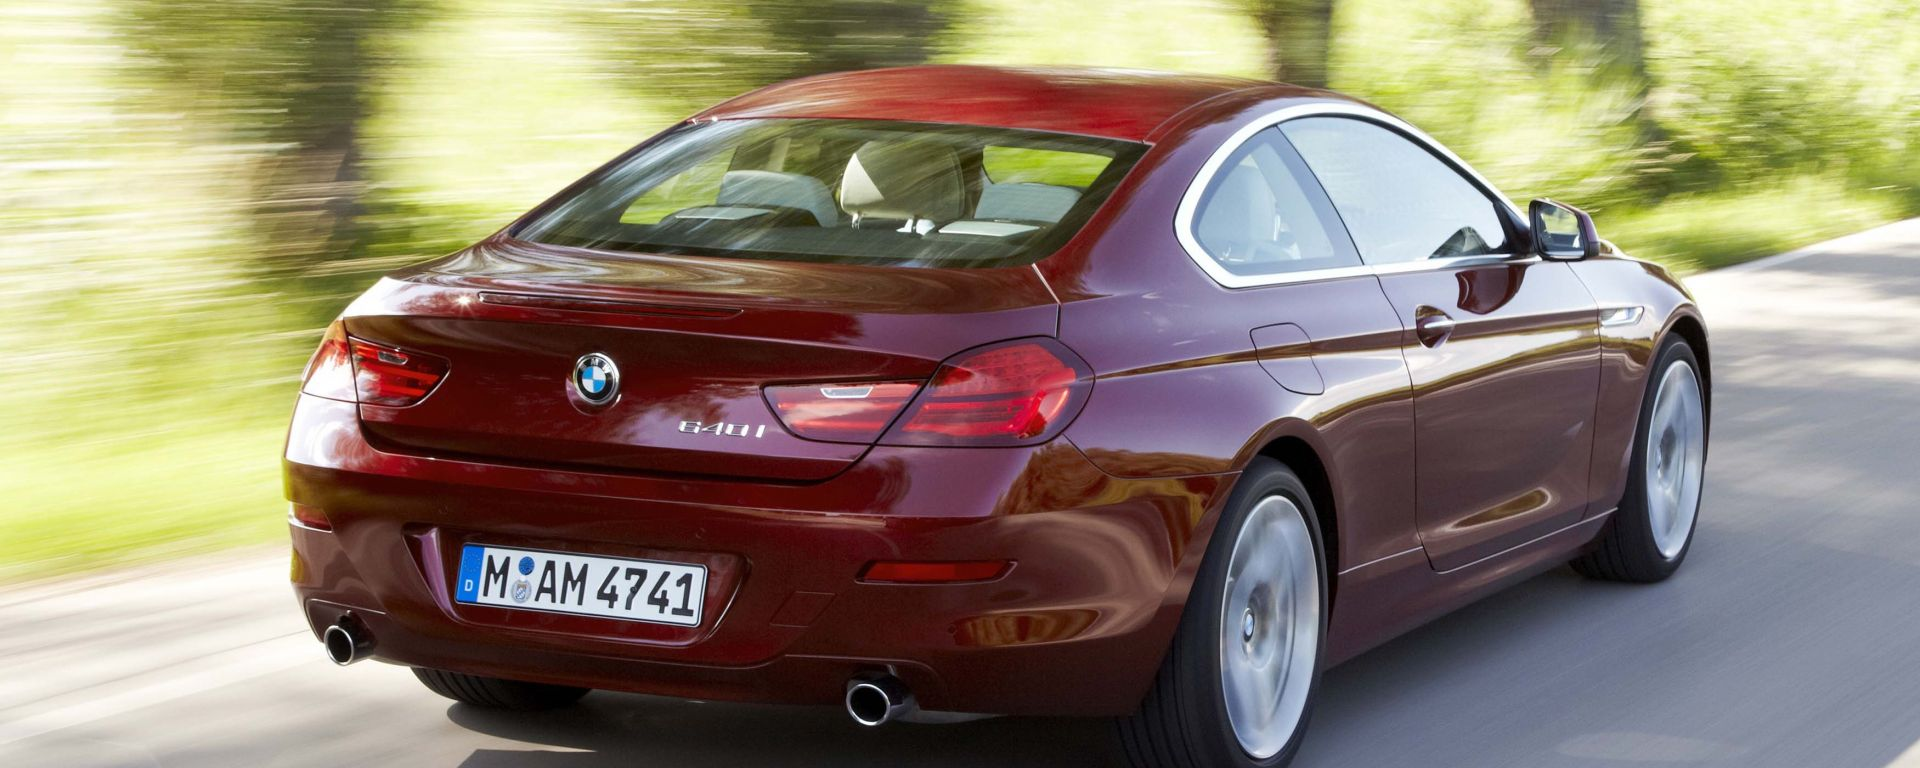 Bmw Serie 6 Coupé 2012: nuovi dati e nuove foto in HD